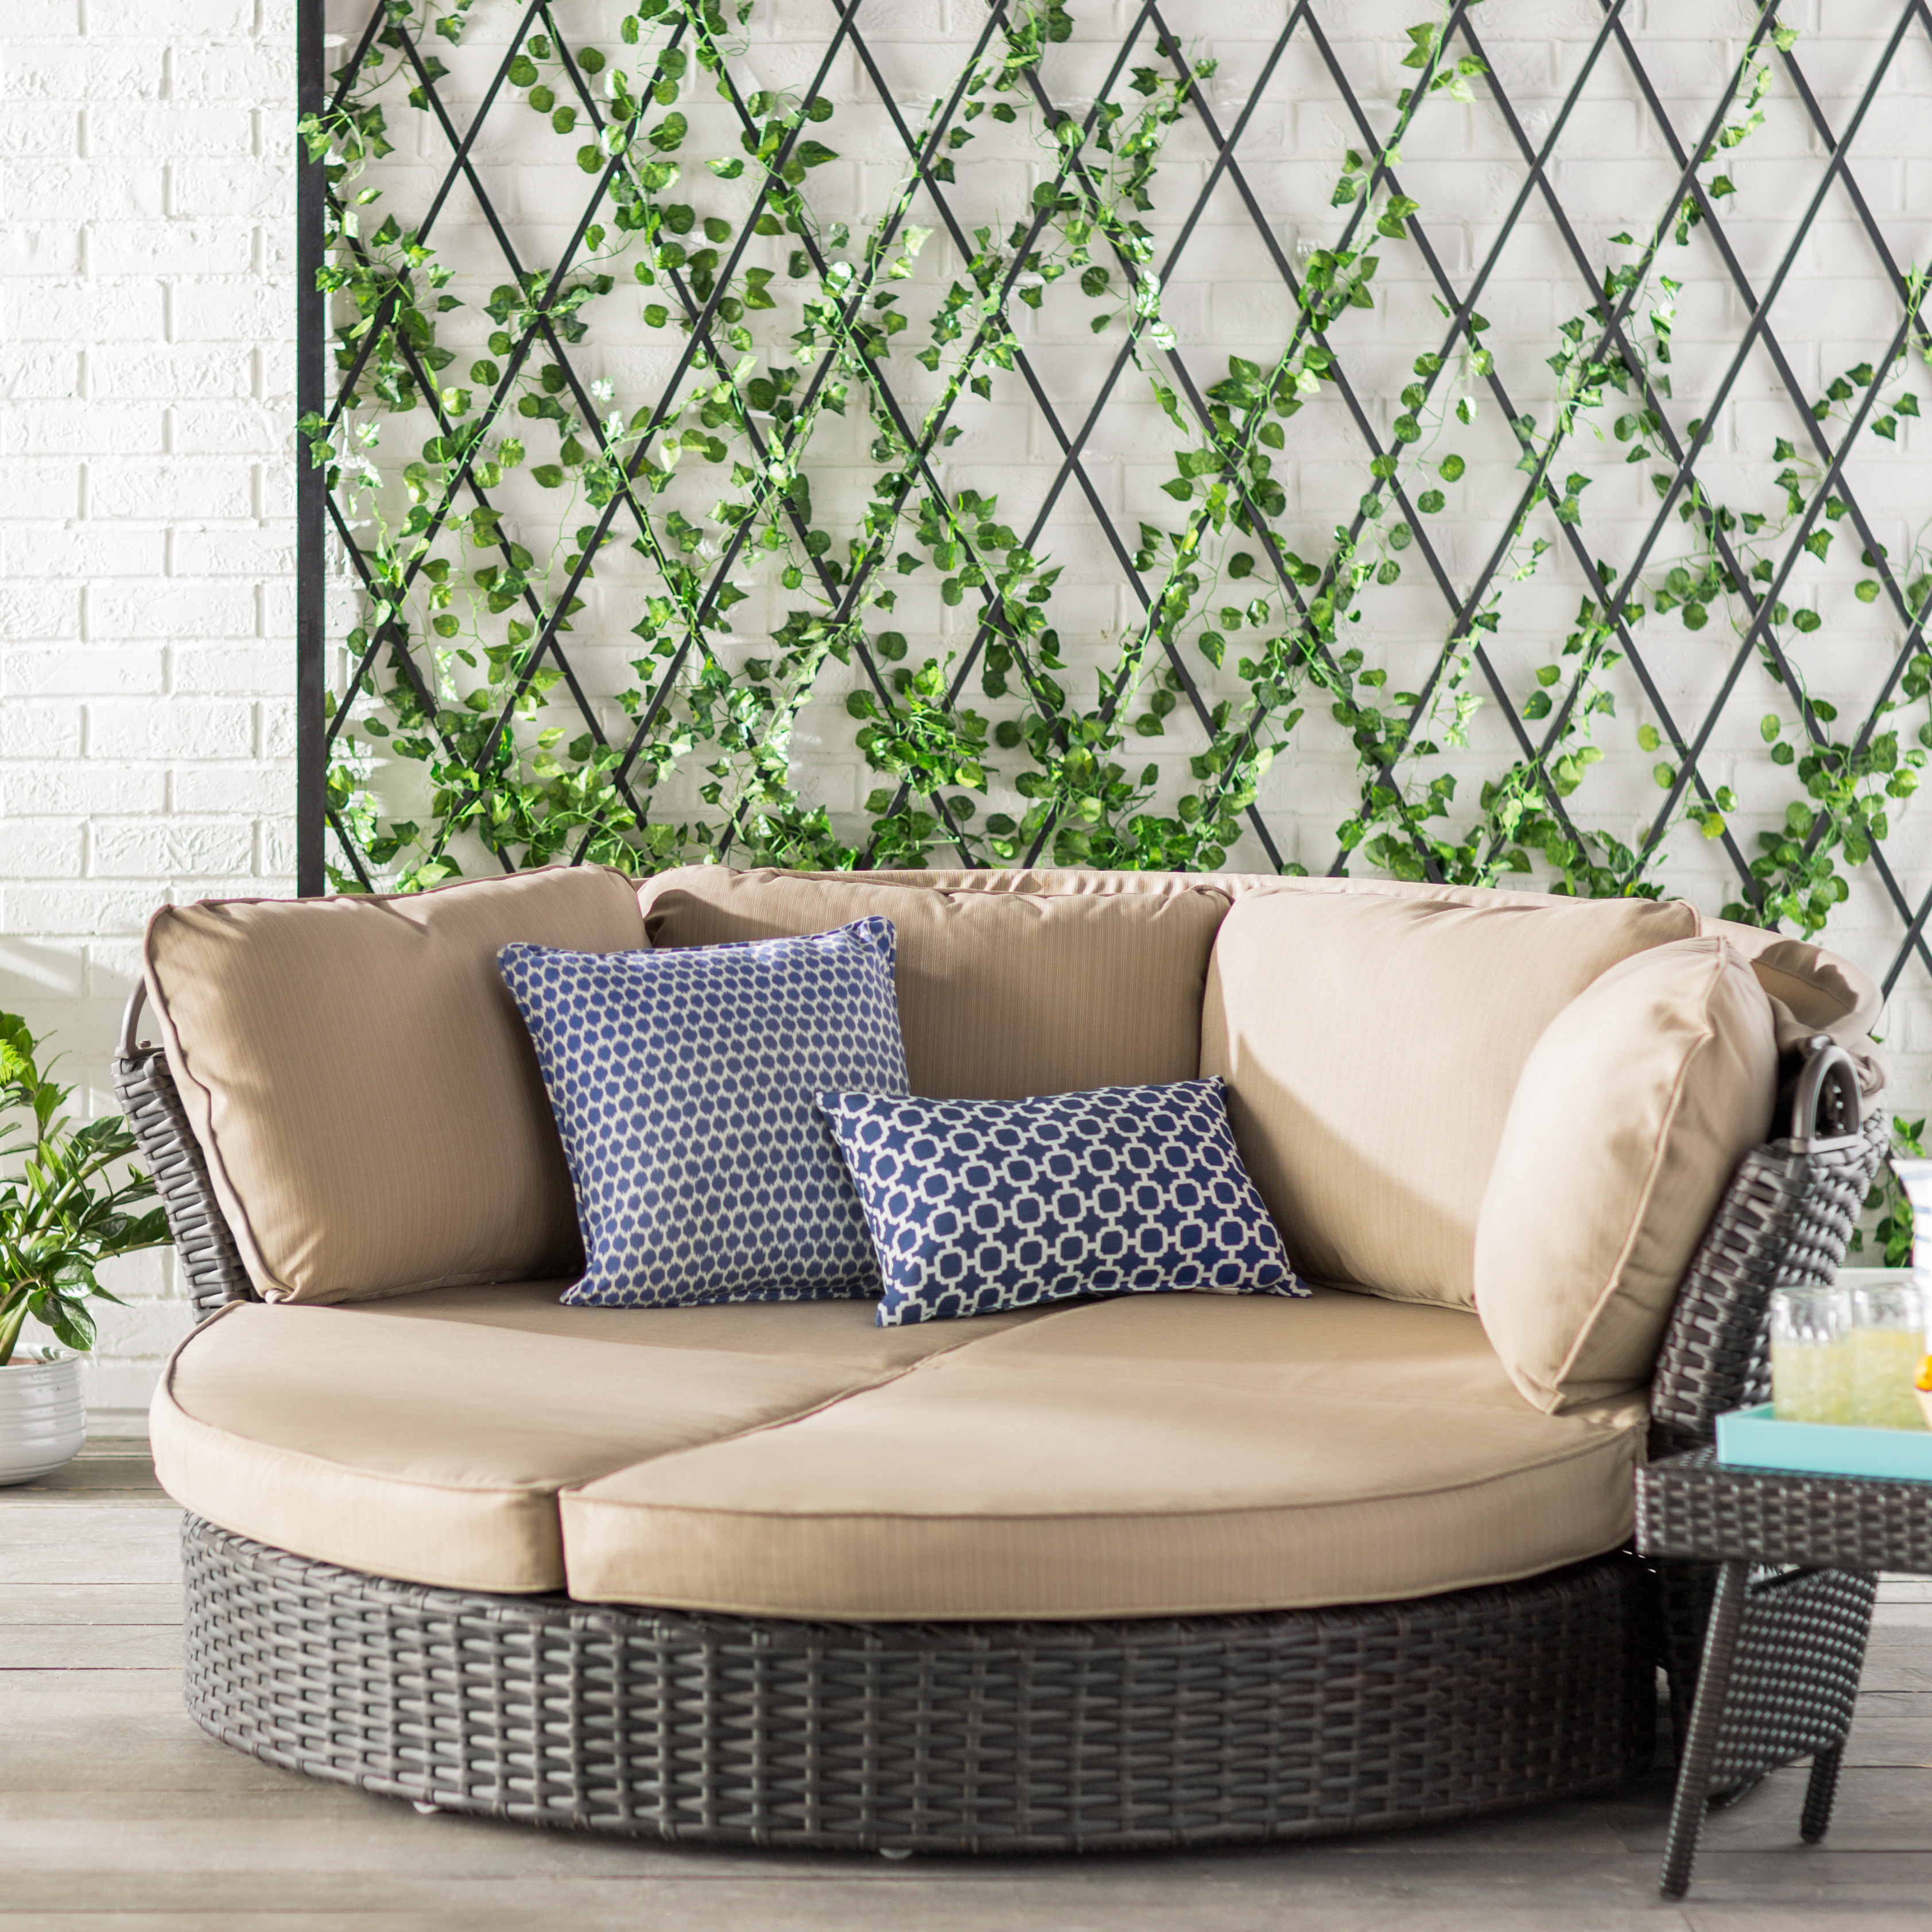 Well Known Tripp Patio Daybeds With Cushions Pertaining To Tiana Patio Daybed With Cushions (View 18 of 20)